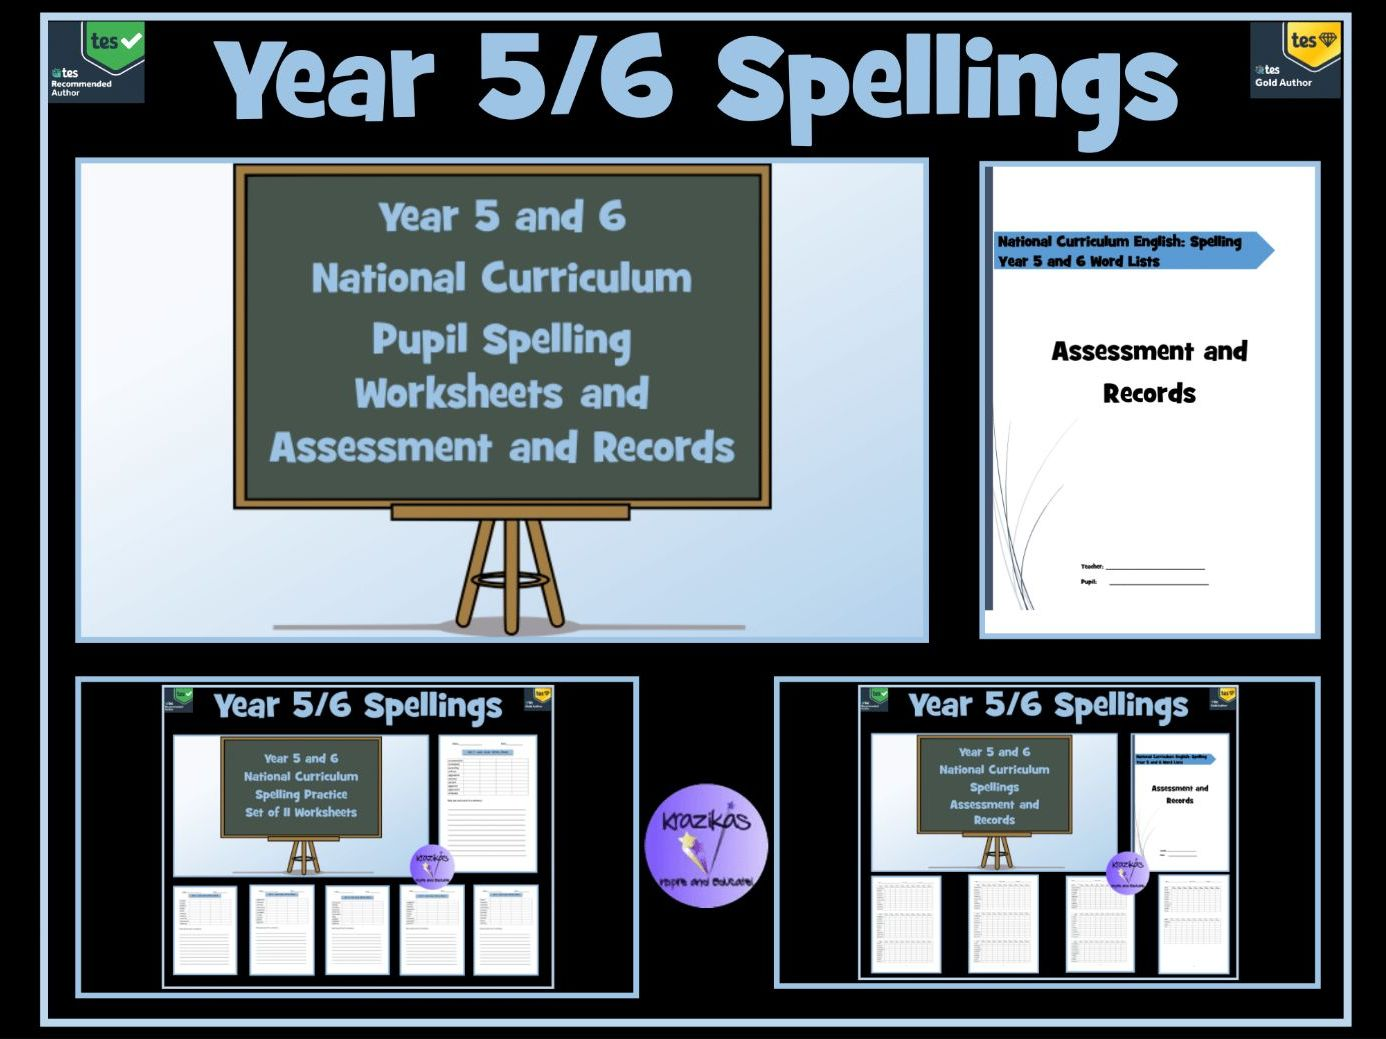 Spelling: Year 5 and 6 National Curriculum Spelling Worksheets and Assessment and Records